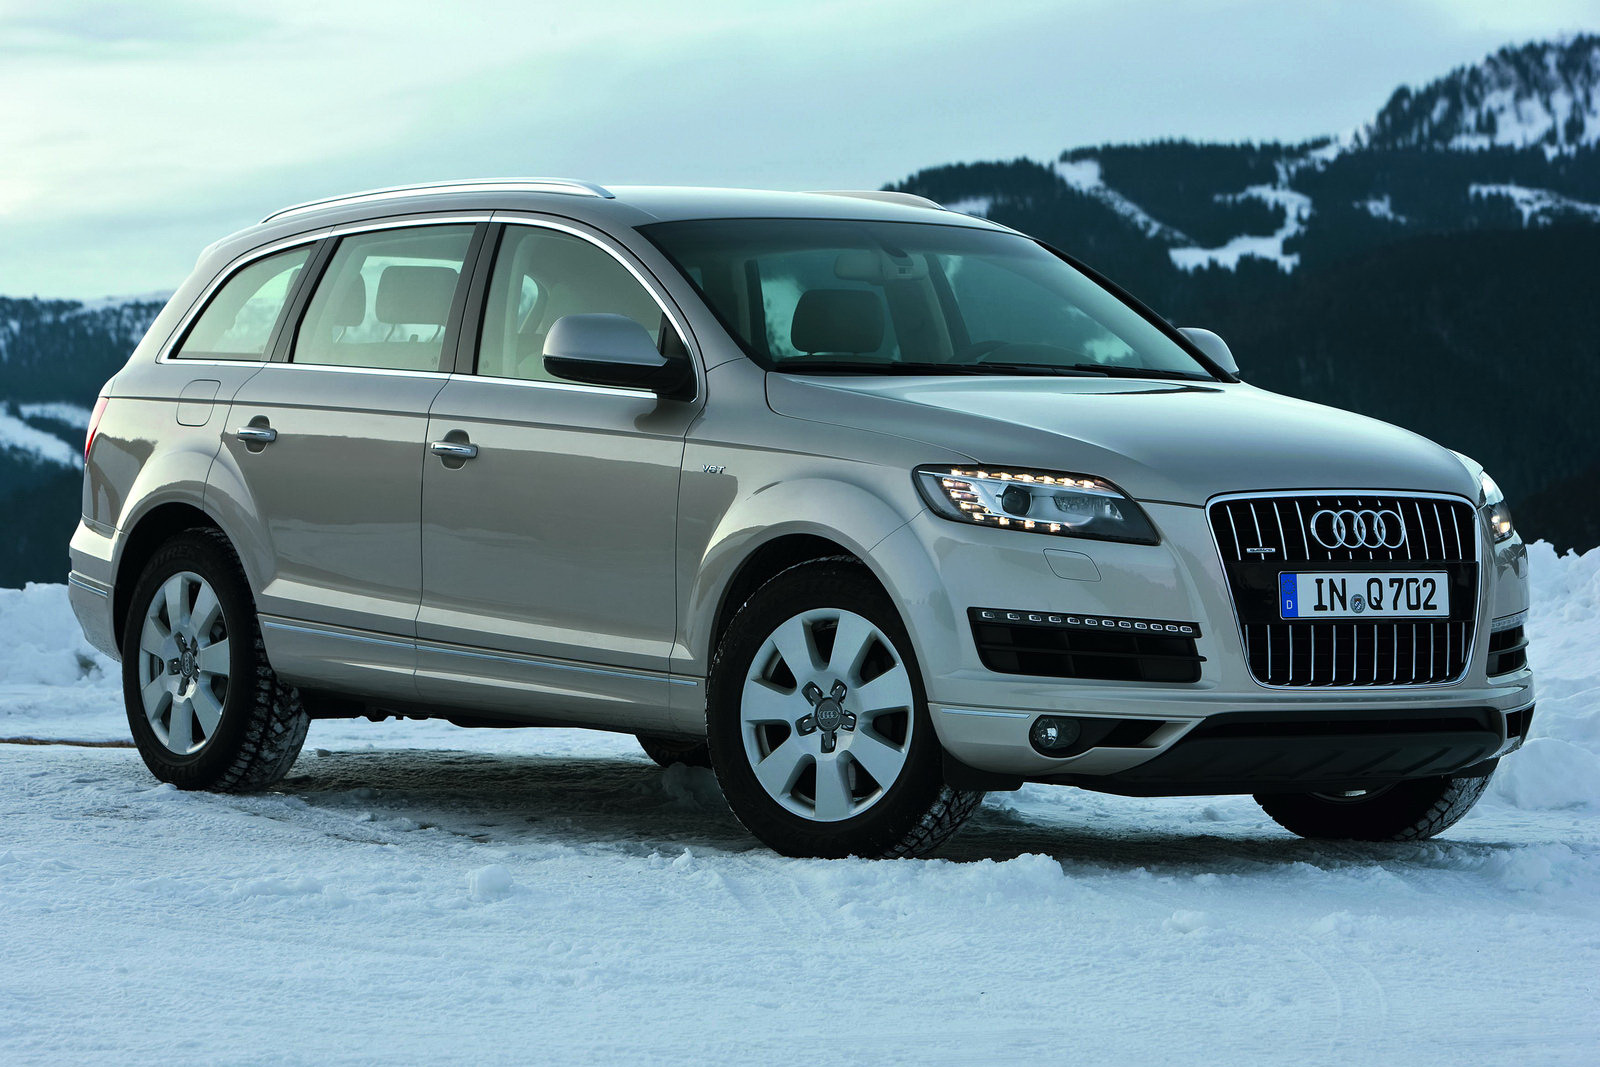 2011 Audi Q7 SUV 1 2011 Audi Q7   Features, Photos, Review, Price